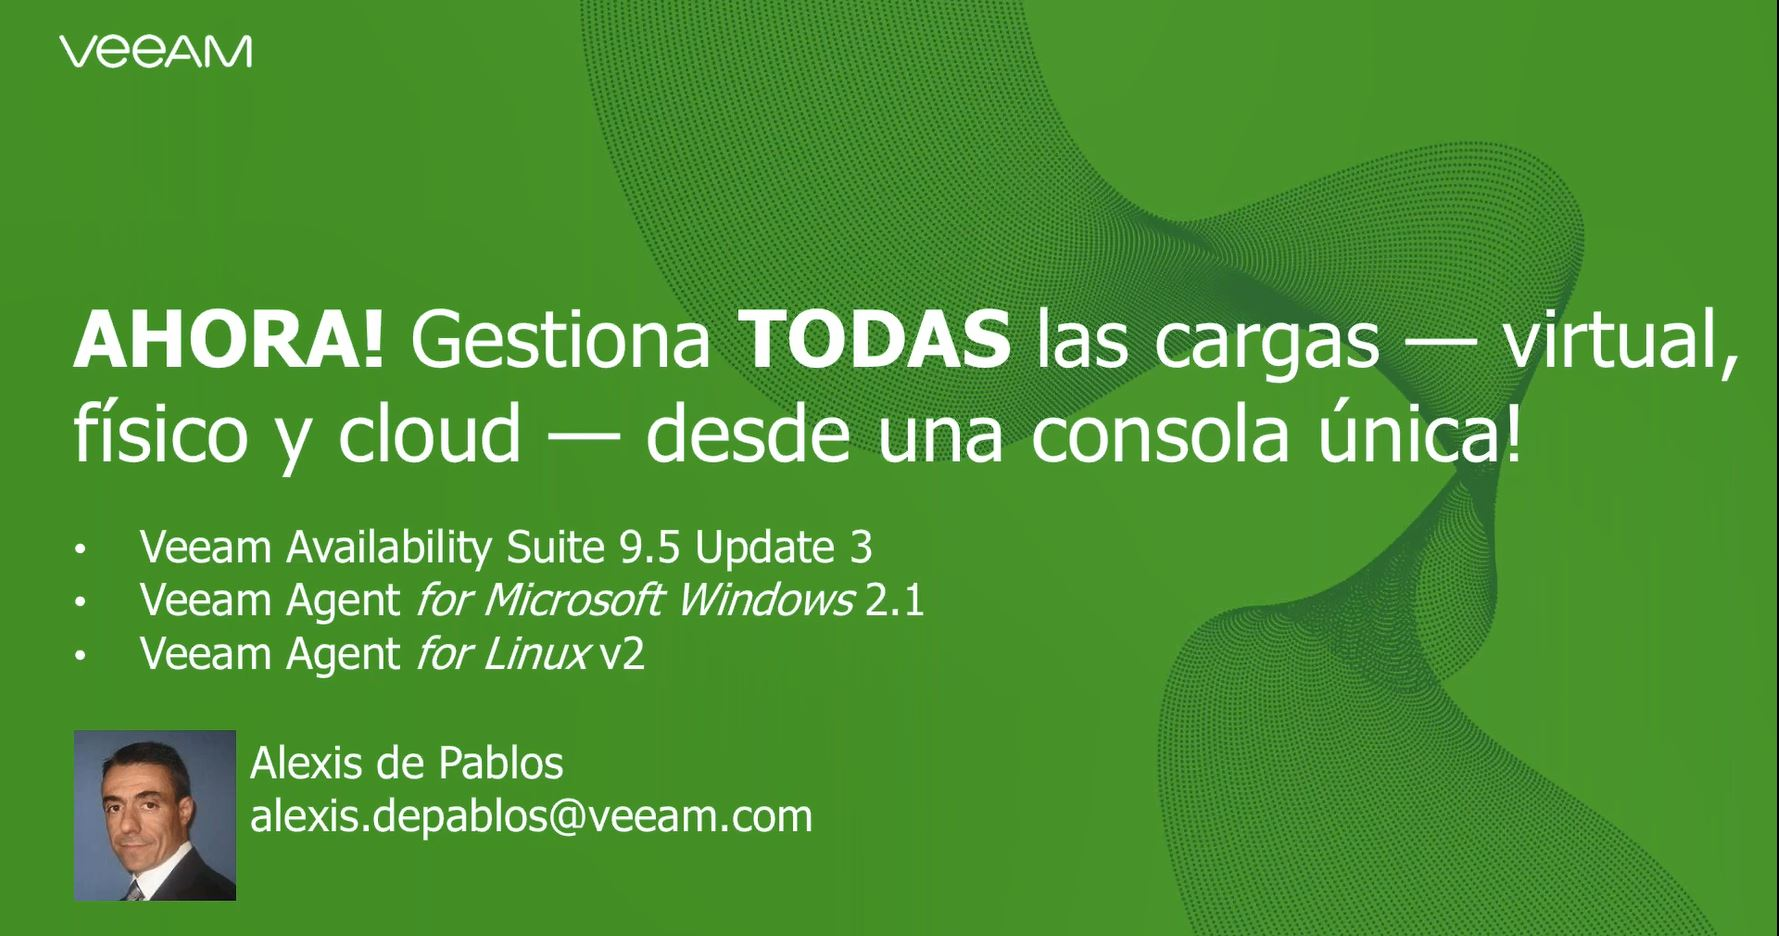 Disfrute del pre-estreno de  Veeam Availability Suite 9.5 Update3